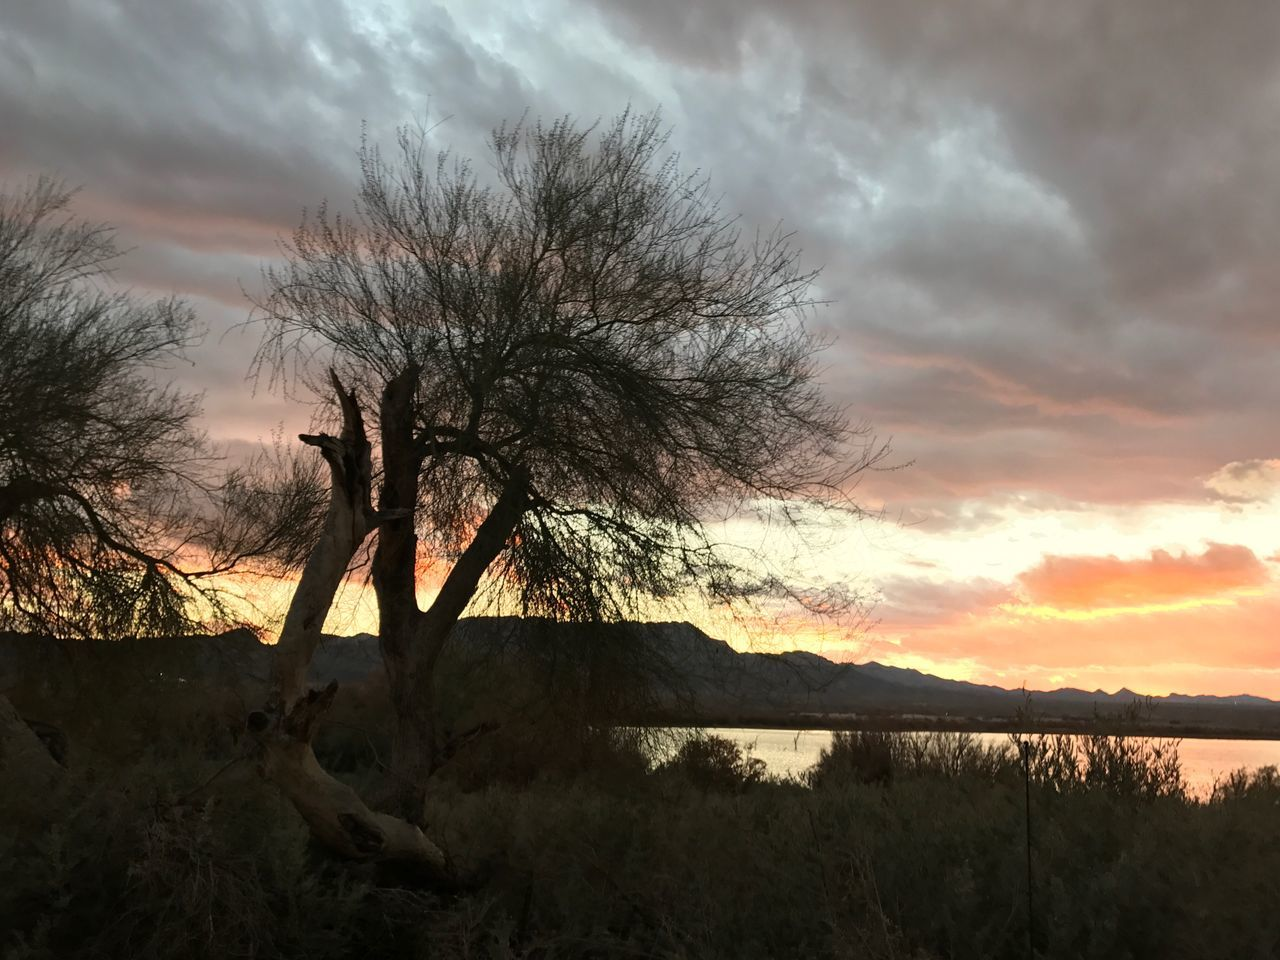 Sky Cloud - Sky Nature Tree Silhouette Beauty In Nature Sunset Tranquility Outdoors No People Scenics Tranquil Scene Bare Tree Landscape Mountain Day No Edit No Filter Desert Beauty Colorado River Huggingatree  Water Reflection Arid Climate